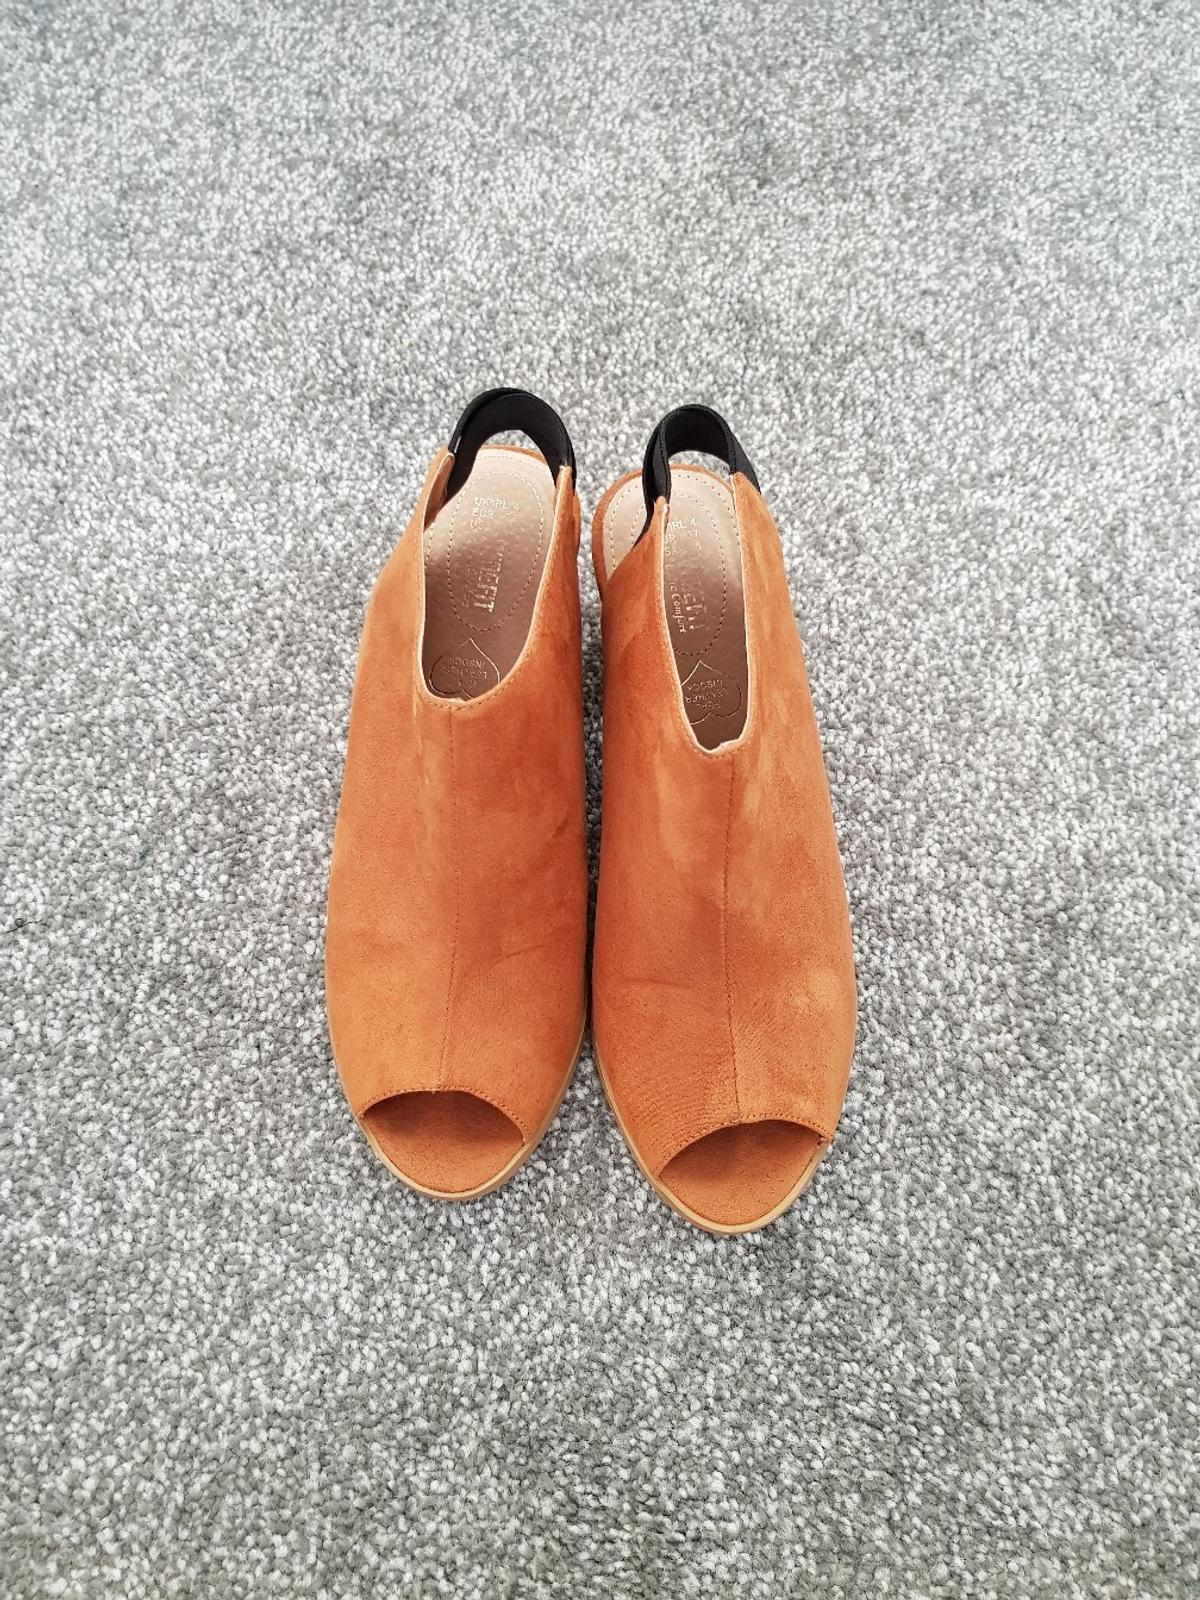 I have for sale a pair of size 4 tan peep toe sling backs from pet and smoke free home